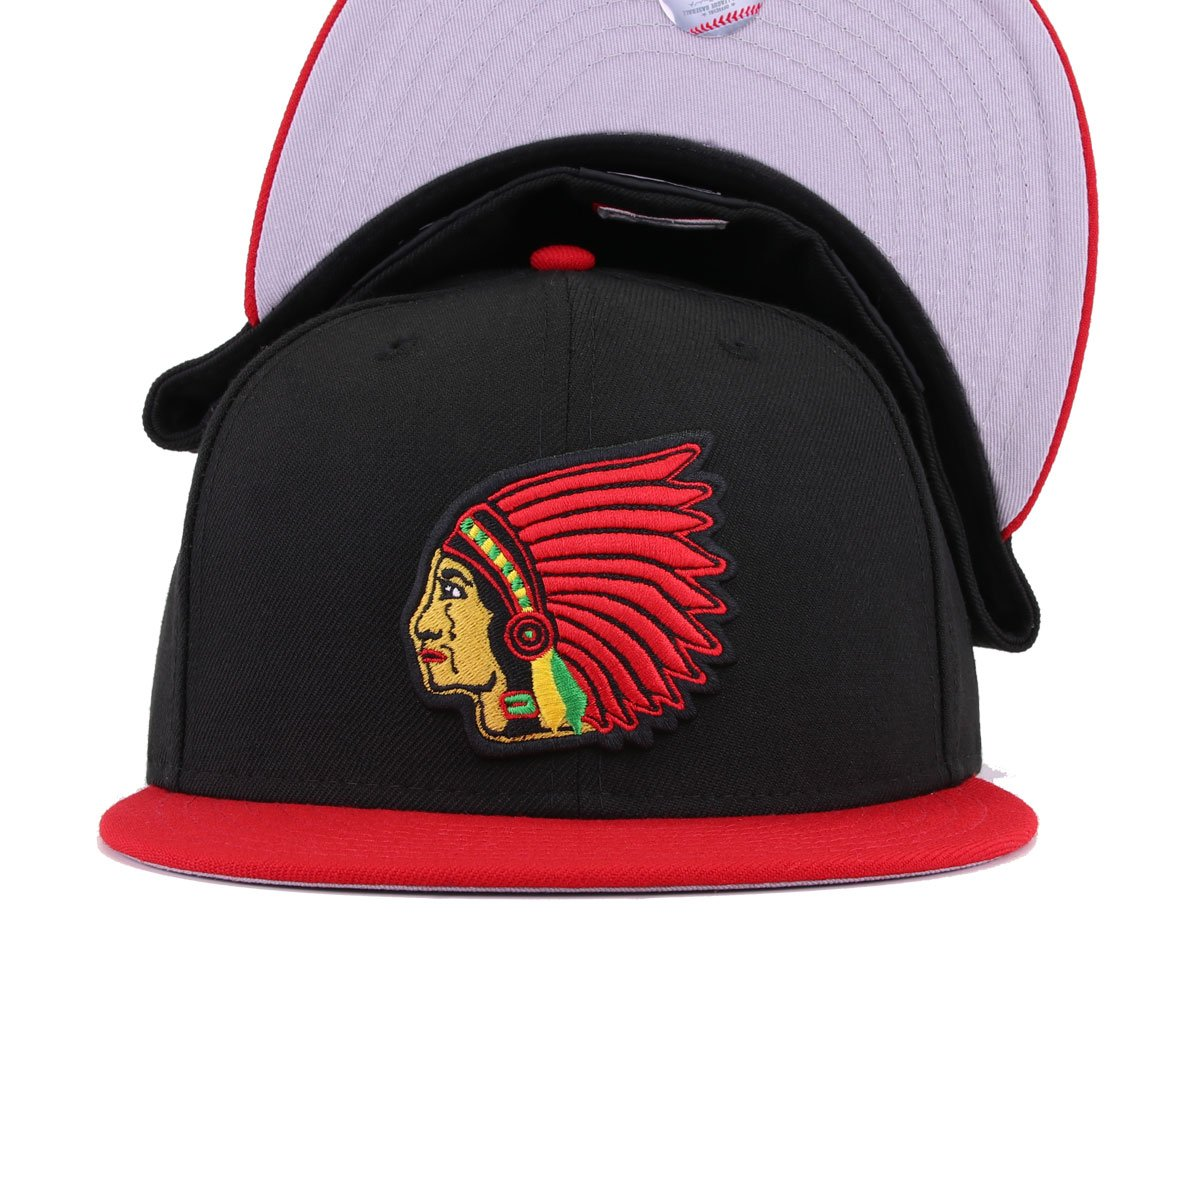 Boston Braves Black Scarlet Cooperstown New Era 59Fifty Fitted